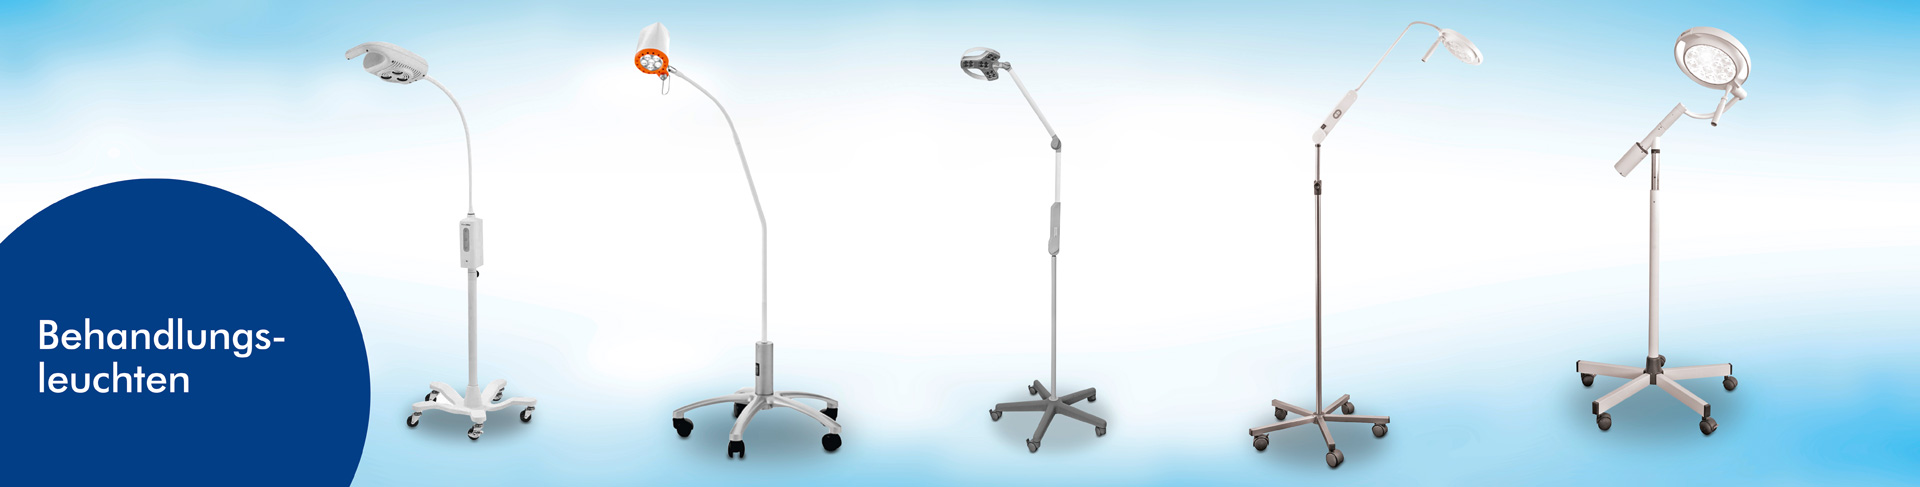 Treatment lights